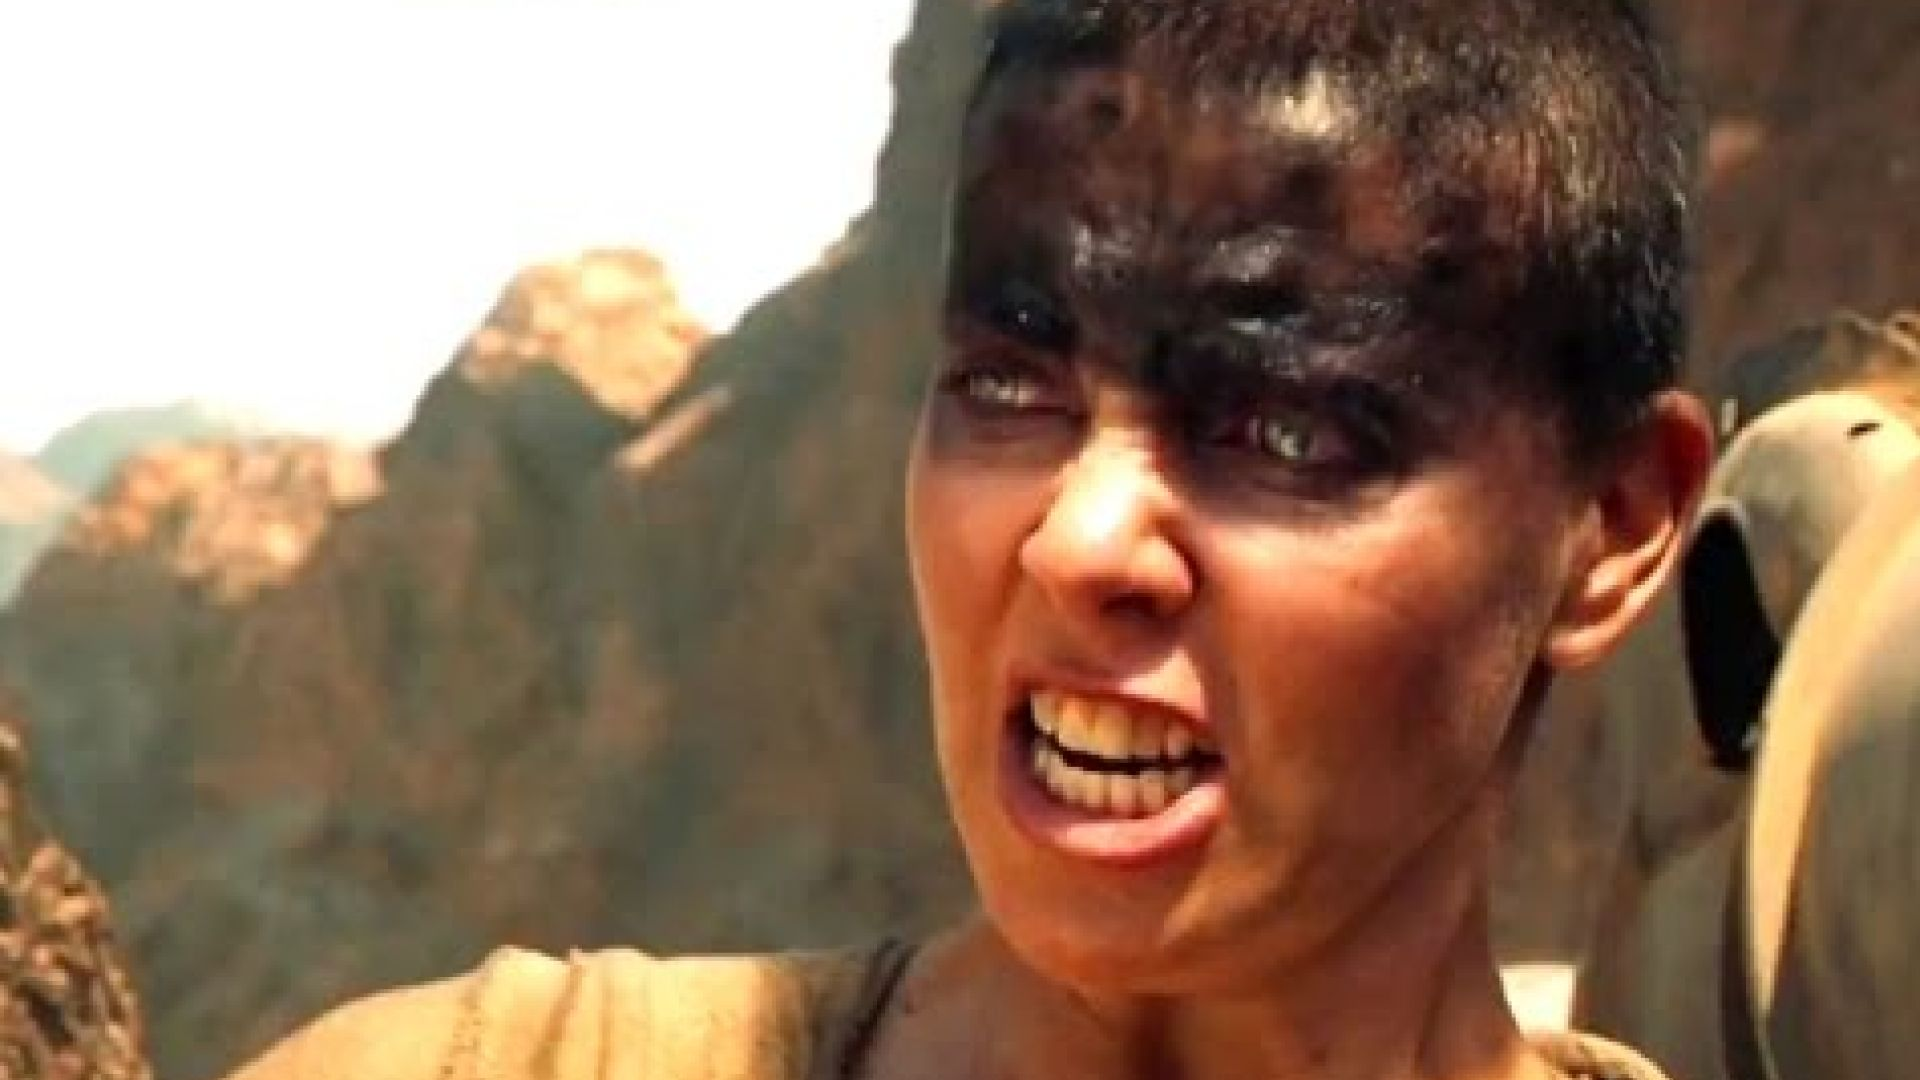 It's a Lovely Day in New TV Spot for 'Mad Max: Fury Road'